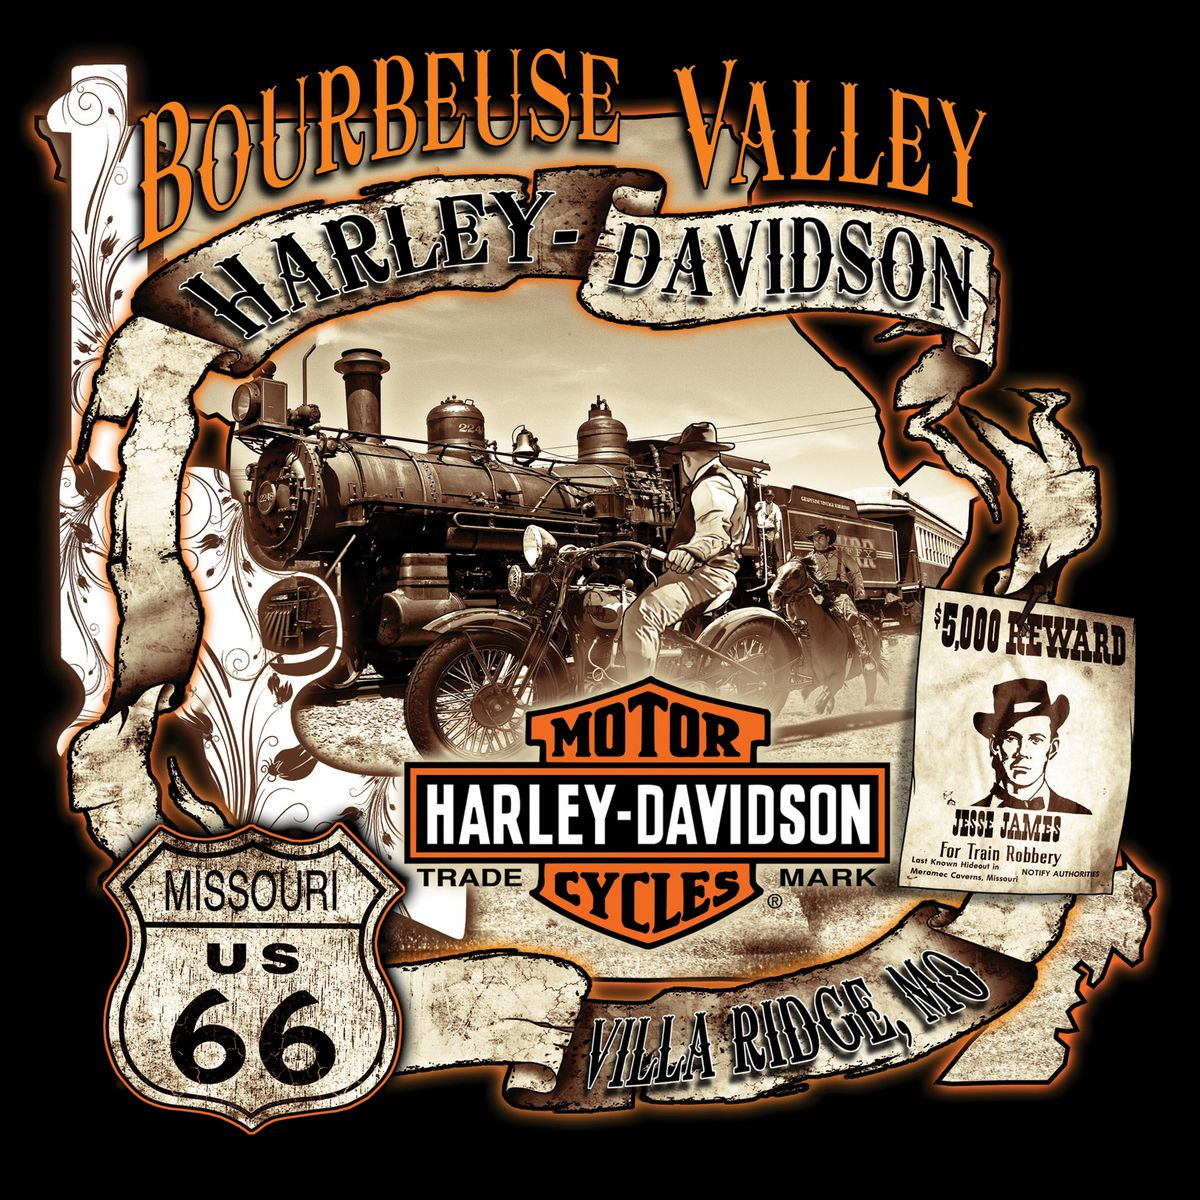 Motorclothes Bourbeuse Valley Harley Davidson Villa Ridge Missouri Harley Davidson Bikes Harley Davidson Dealership Harley Davidson Signs